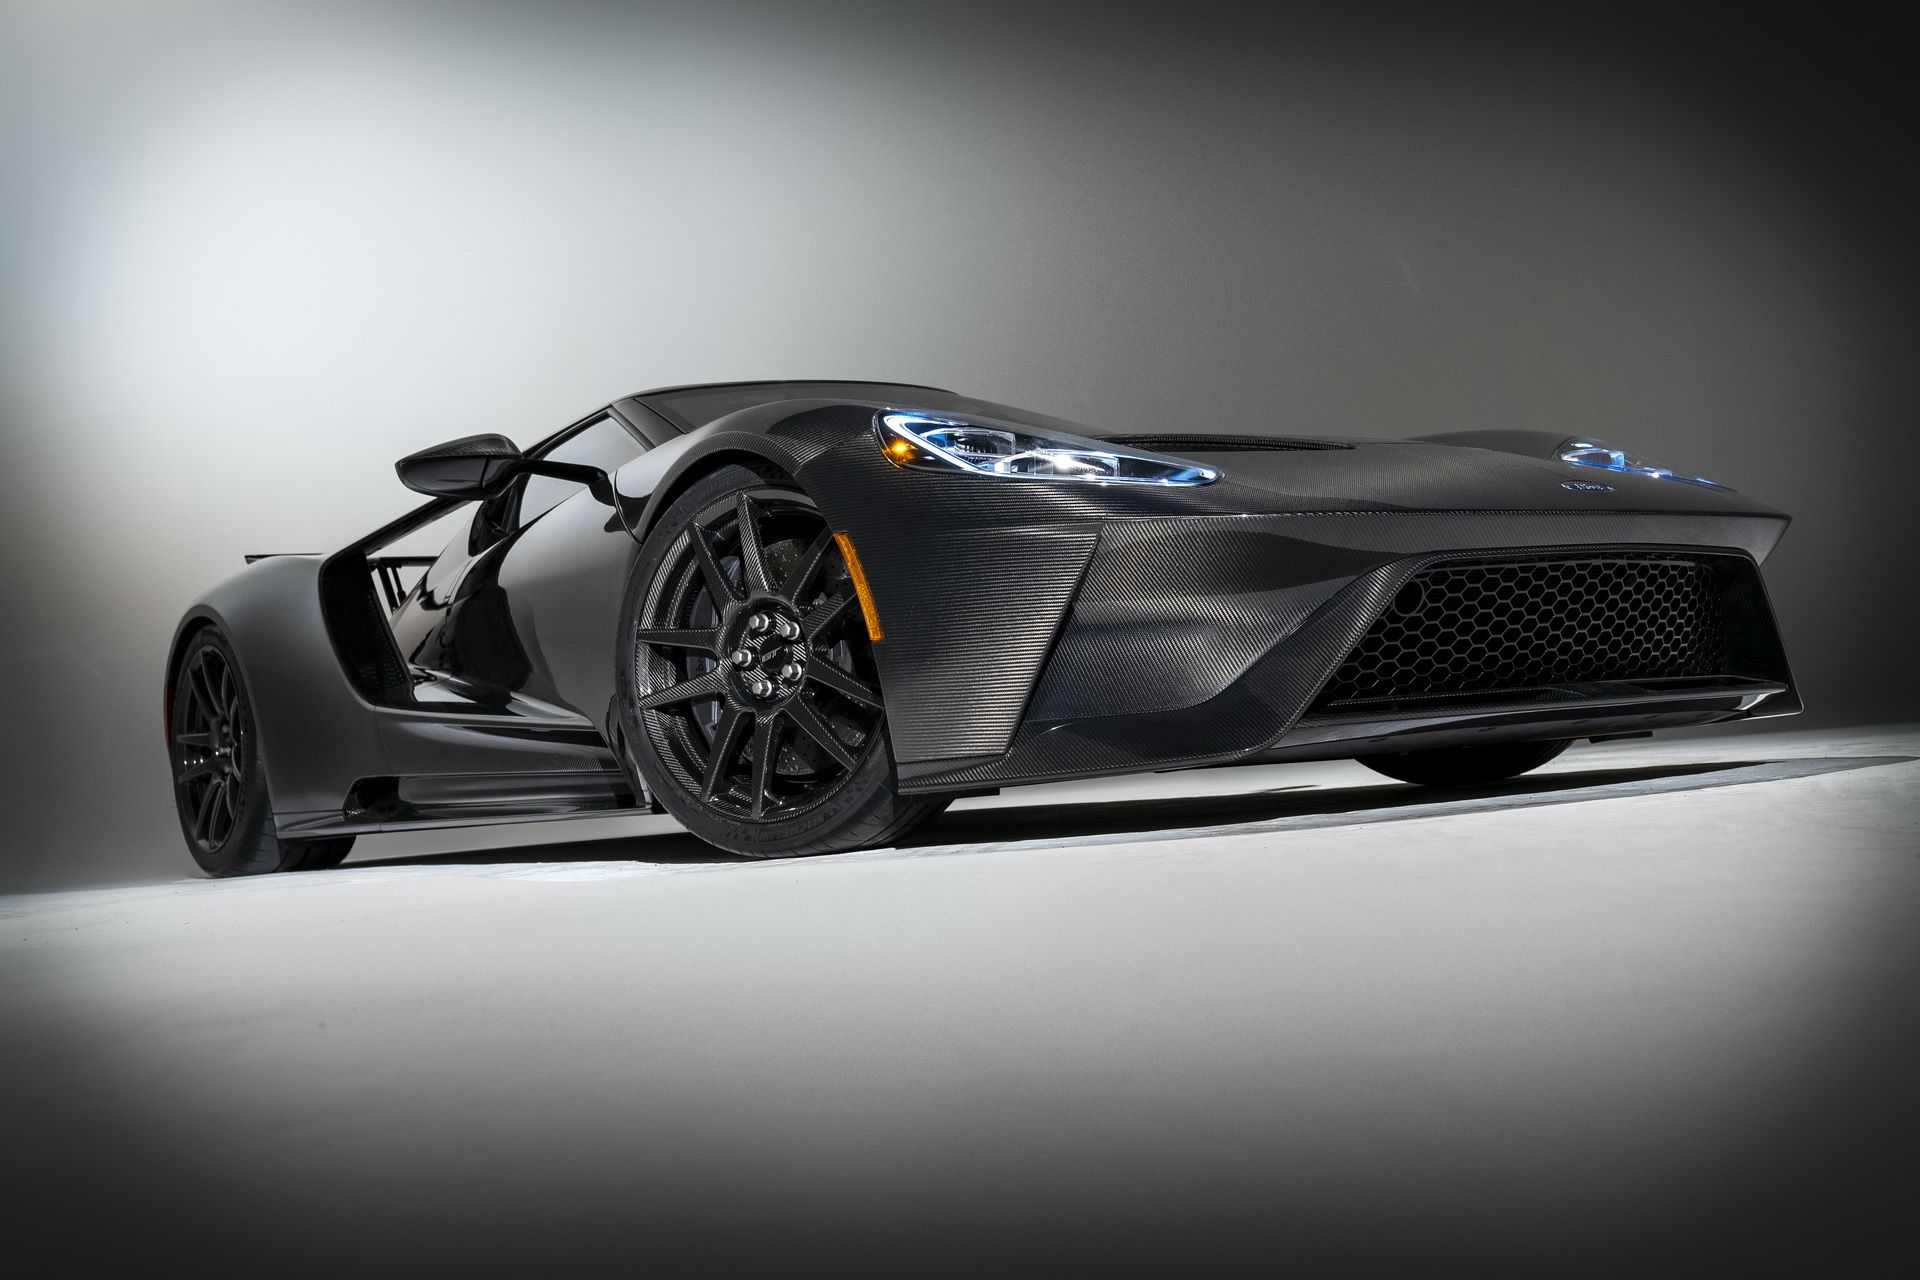 2020-ford-gt-liquid-carbon-edition-13